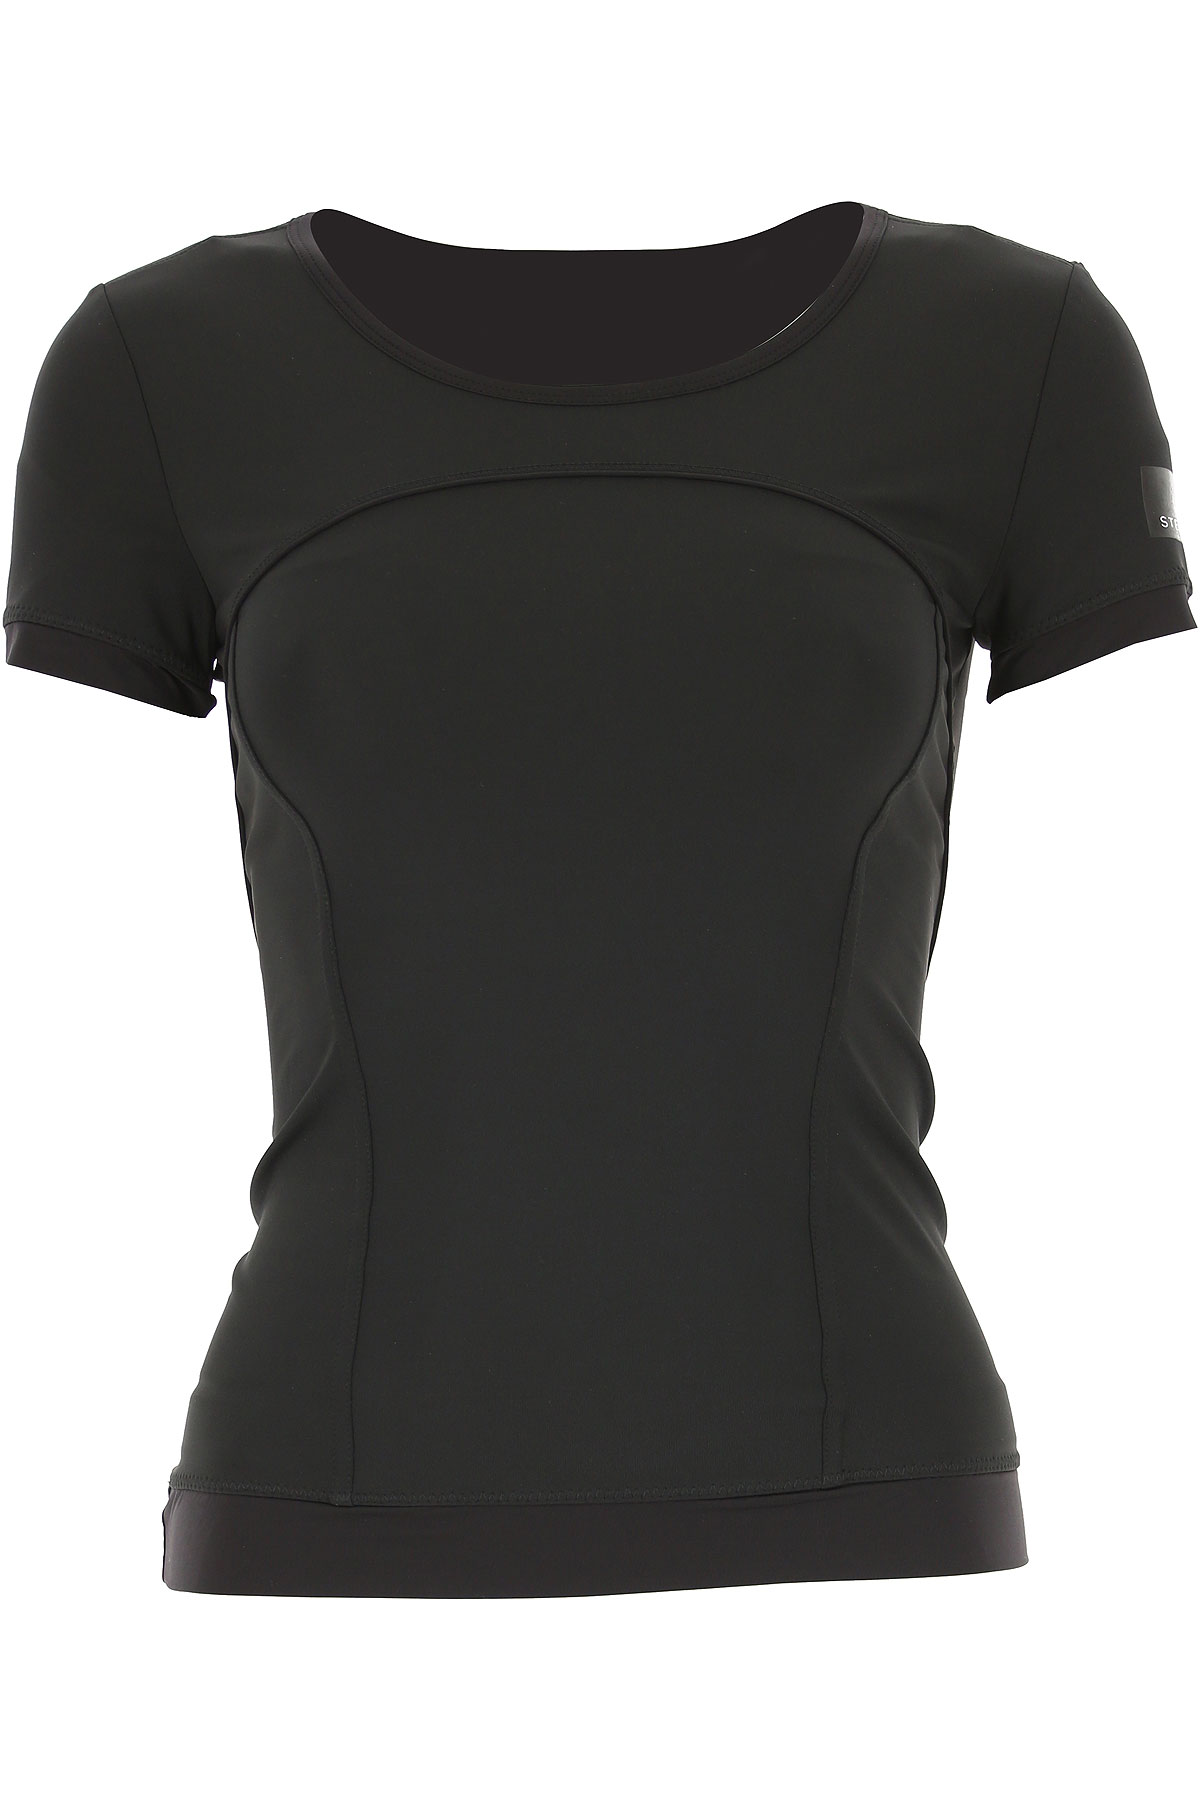 Adidas T-Shirt for Women On Sale in Outlet, Black, Polyester Recycled, 2019, 2 6